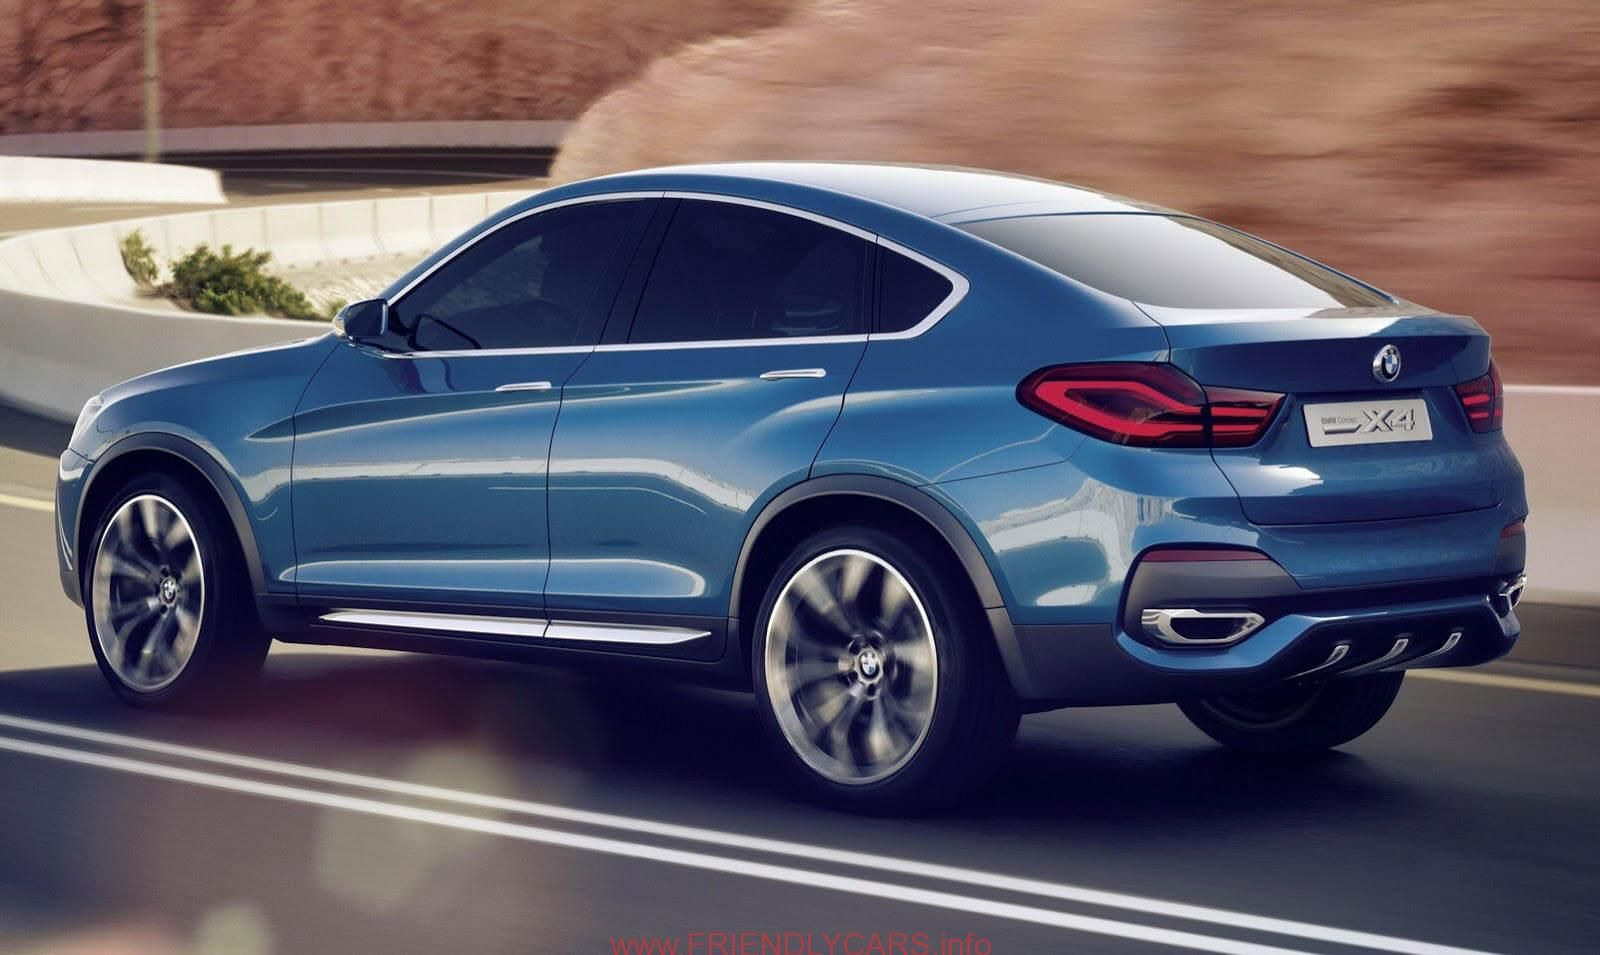 Awesome Bmw X6 2014 Model Car Images Hd Bmw X6 New Model 2015 Cars Melon  Cars